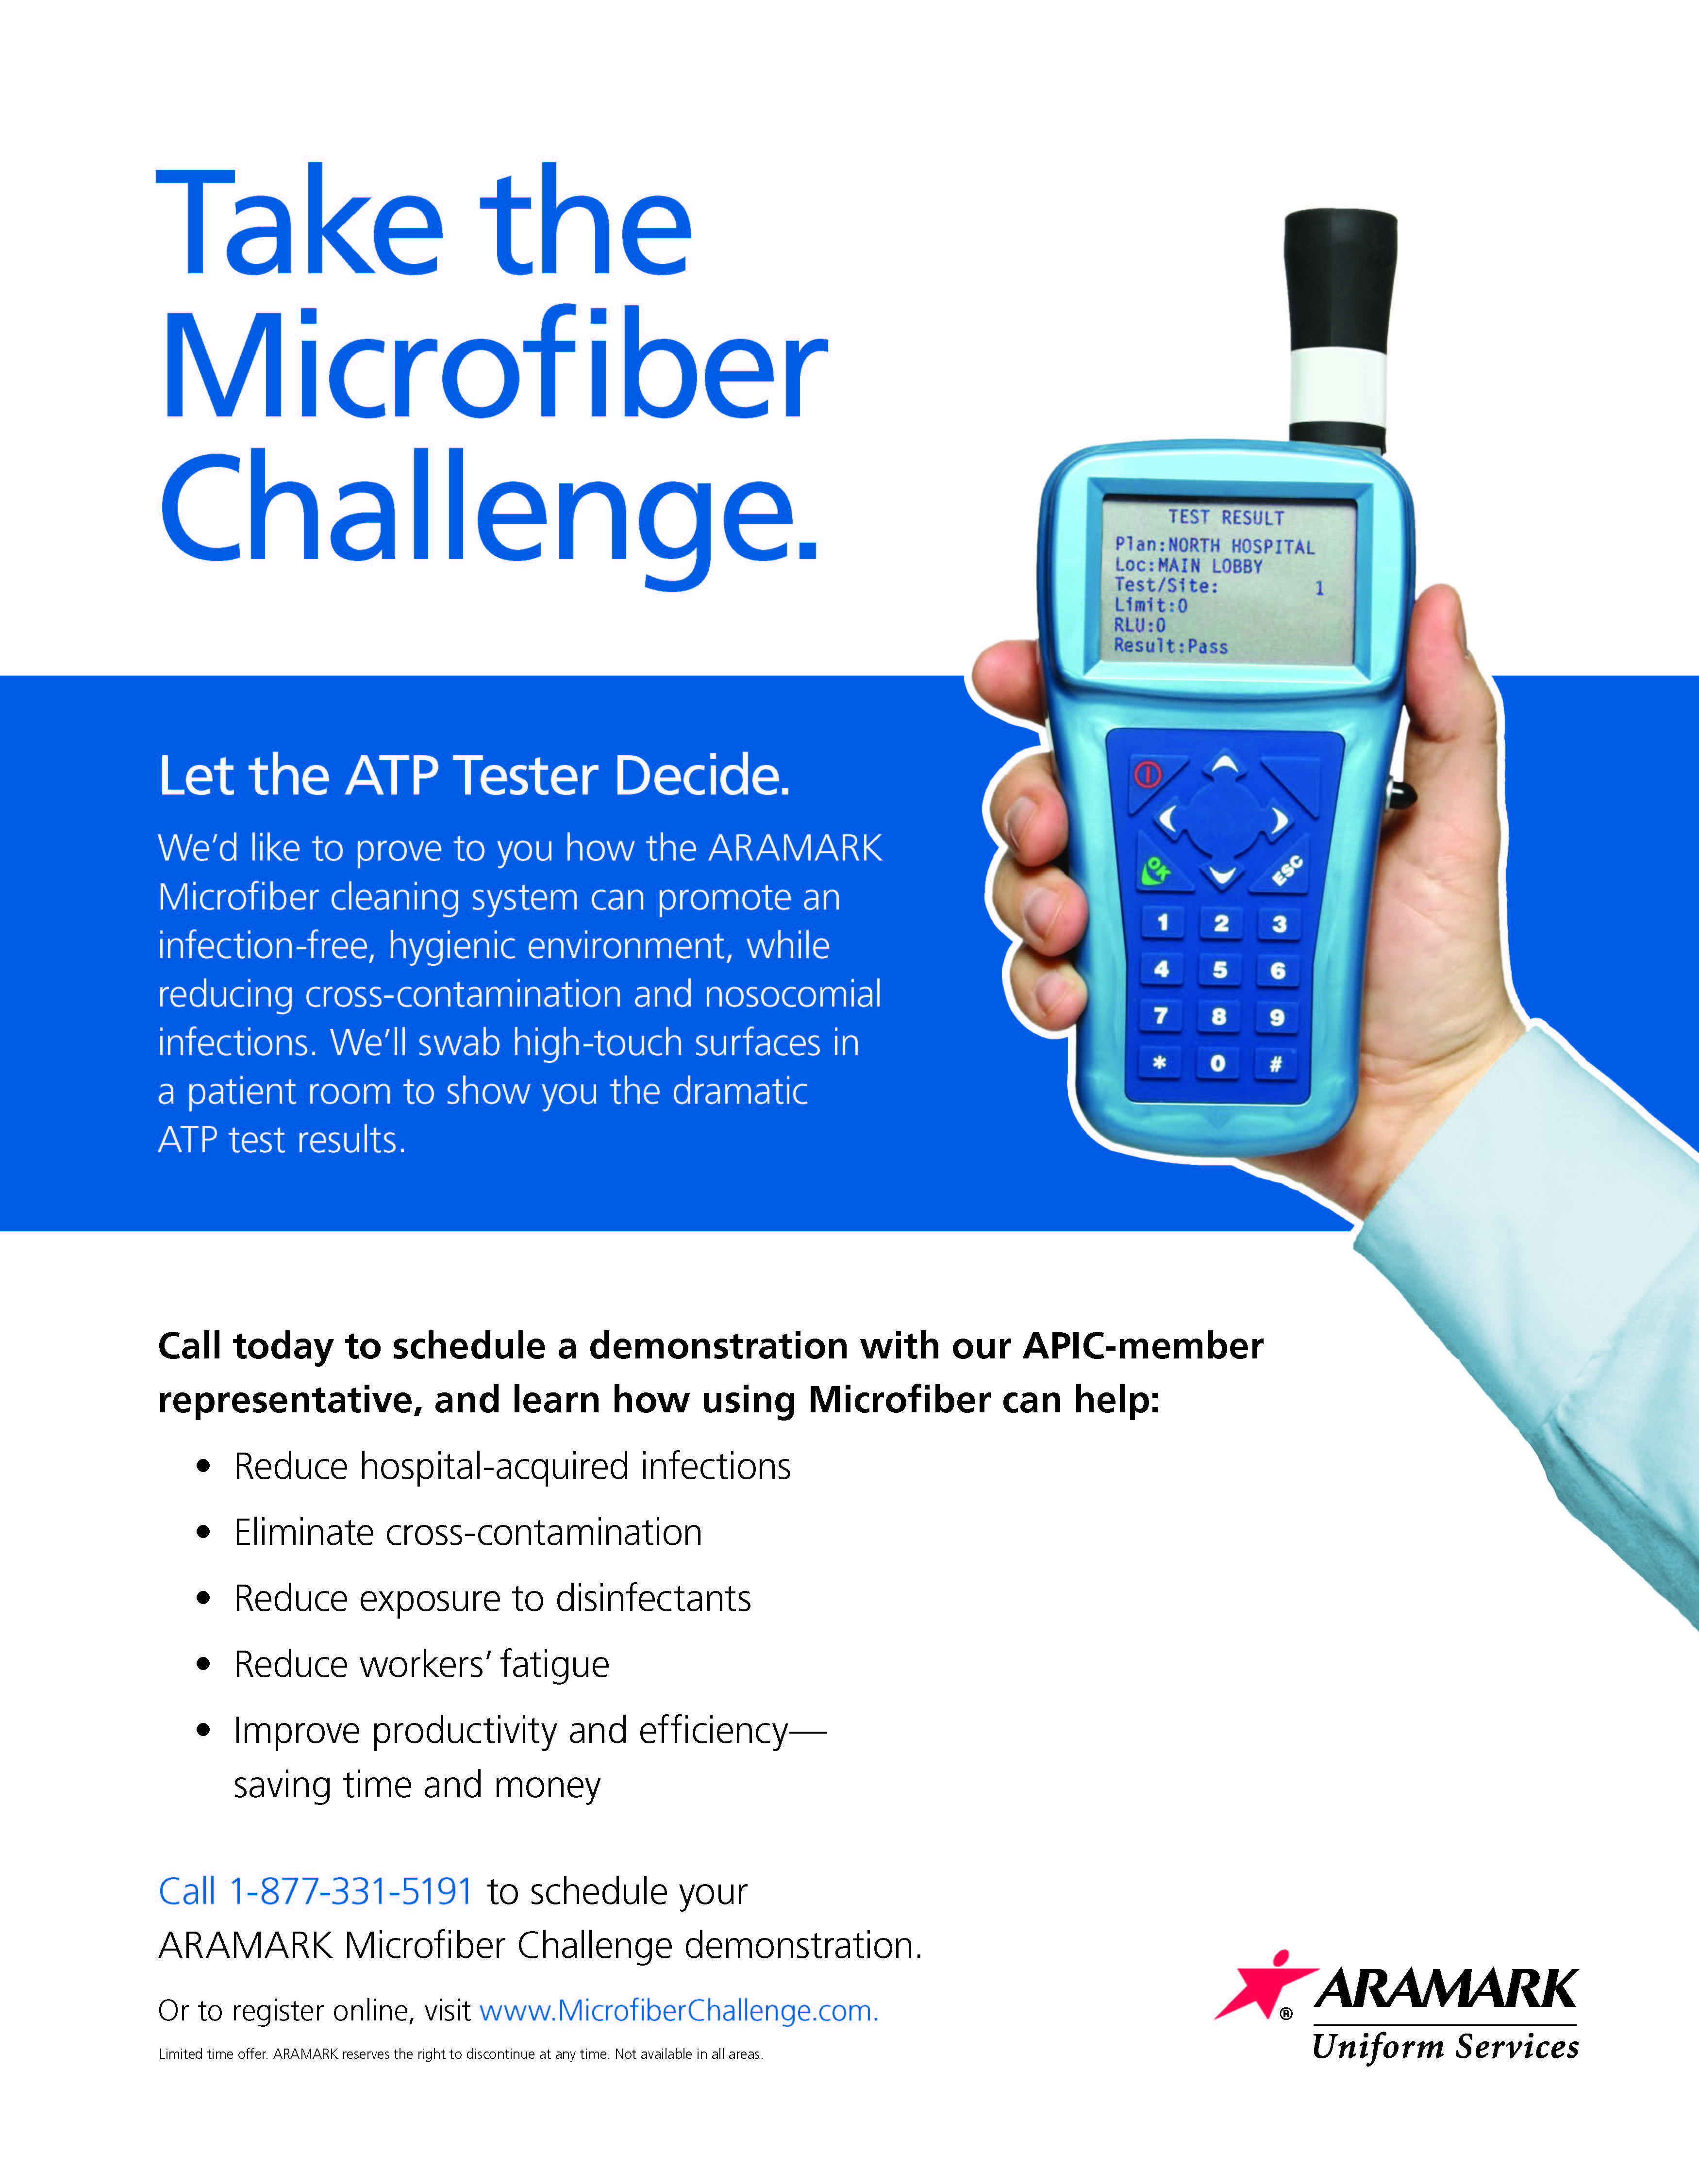 Aramark S Microfiber Cleaning System Can Promote An Infection Free Hygienic Environment While Reducing Cross C Clean Microfiber High Touch Infectious Disease